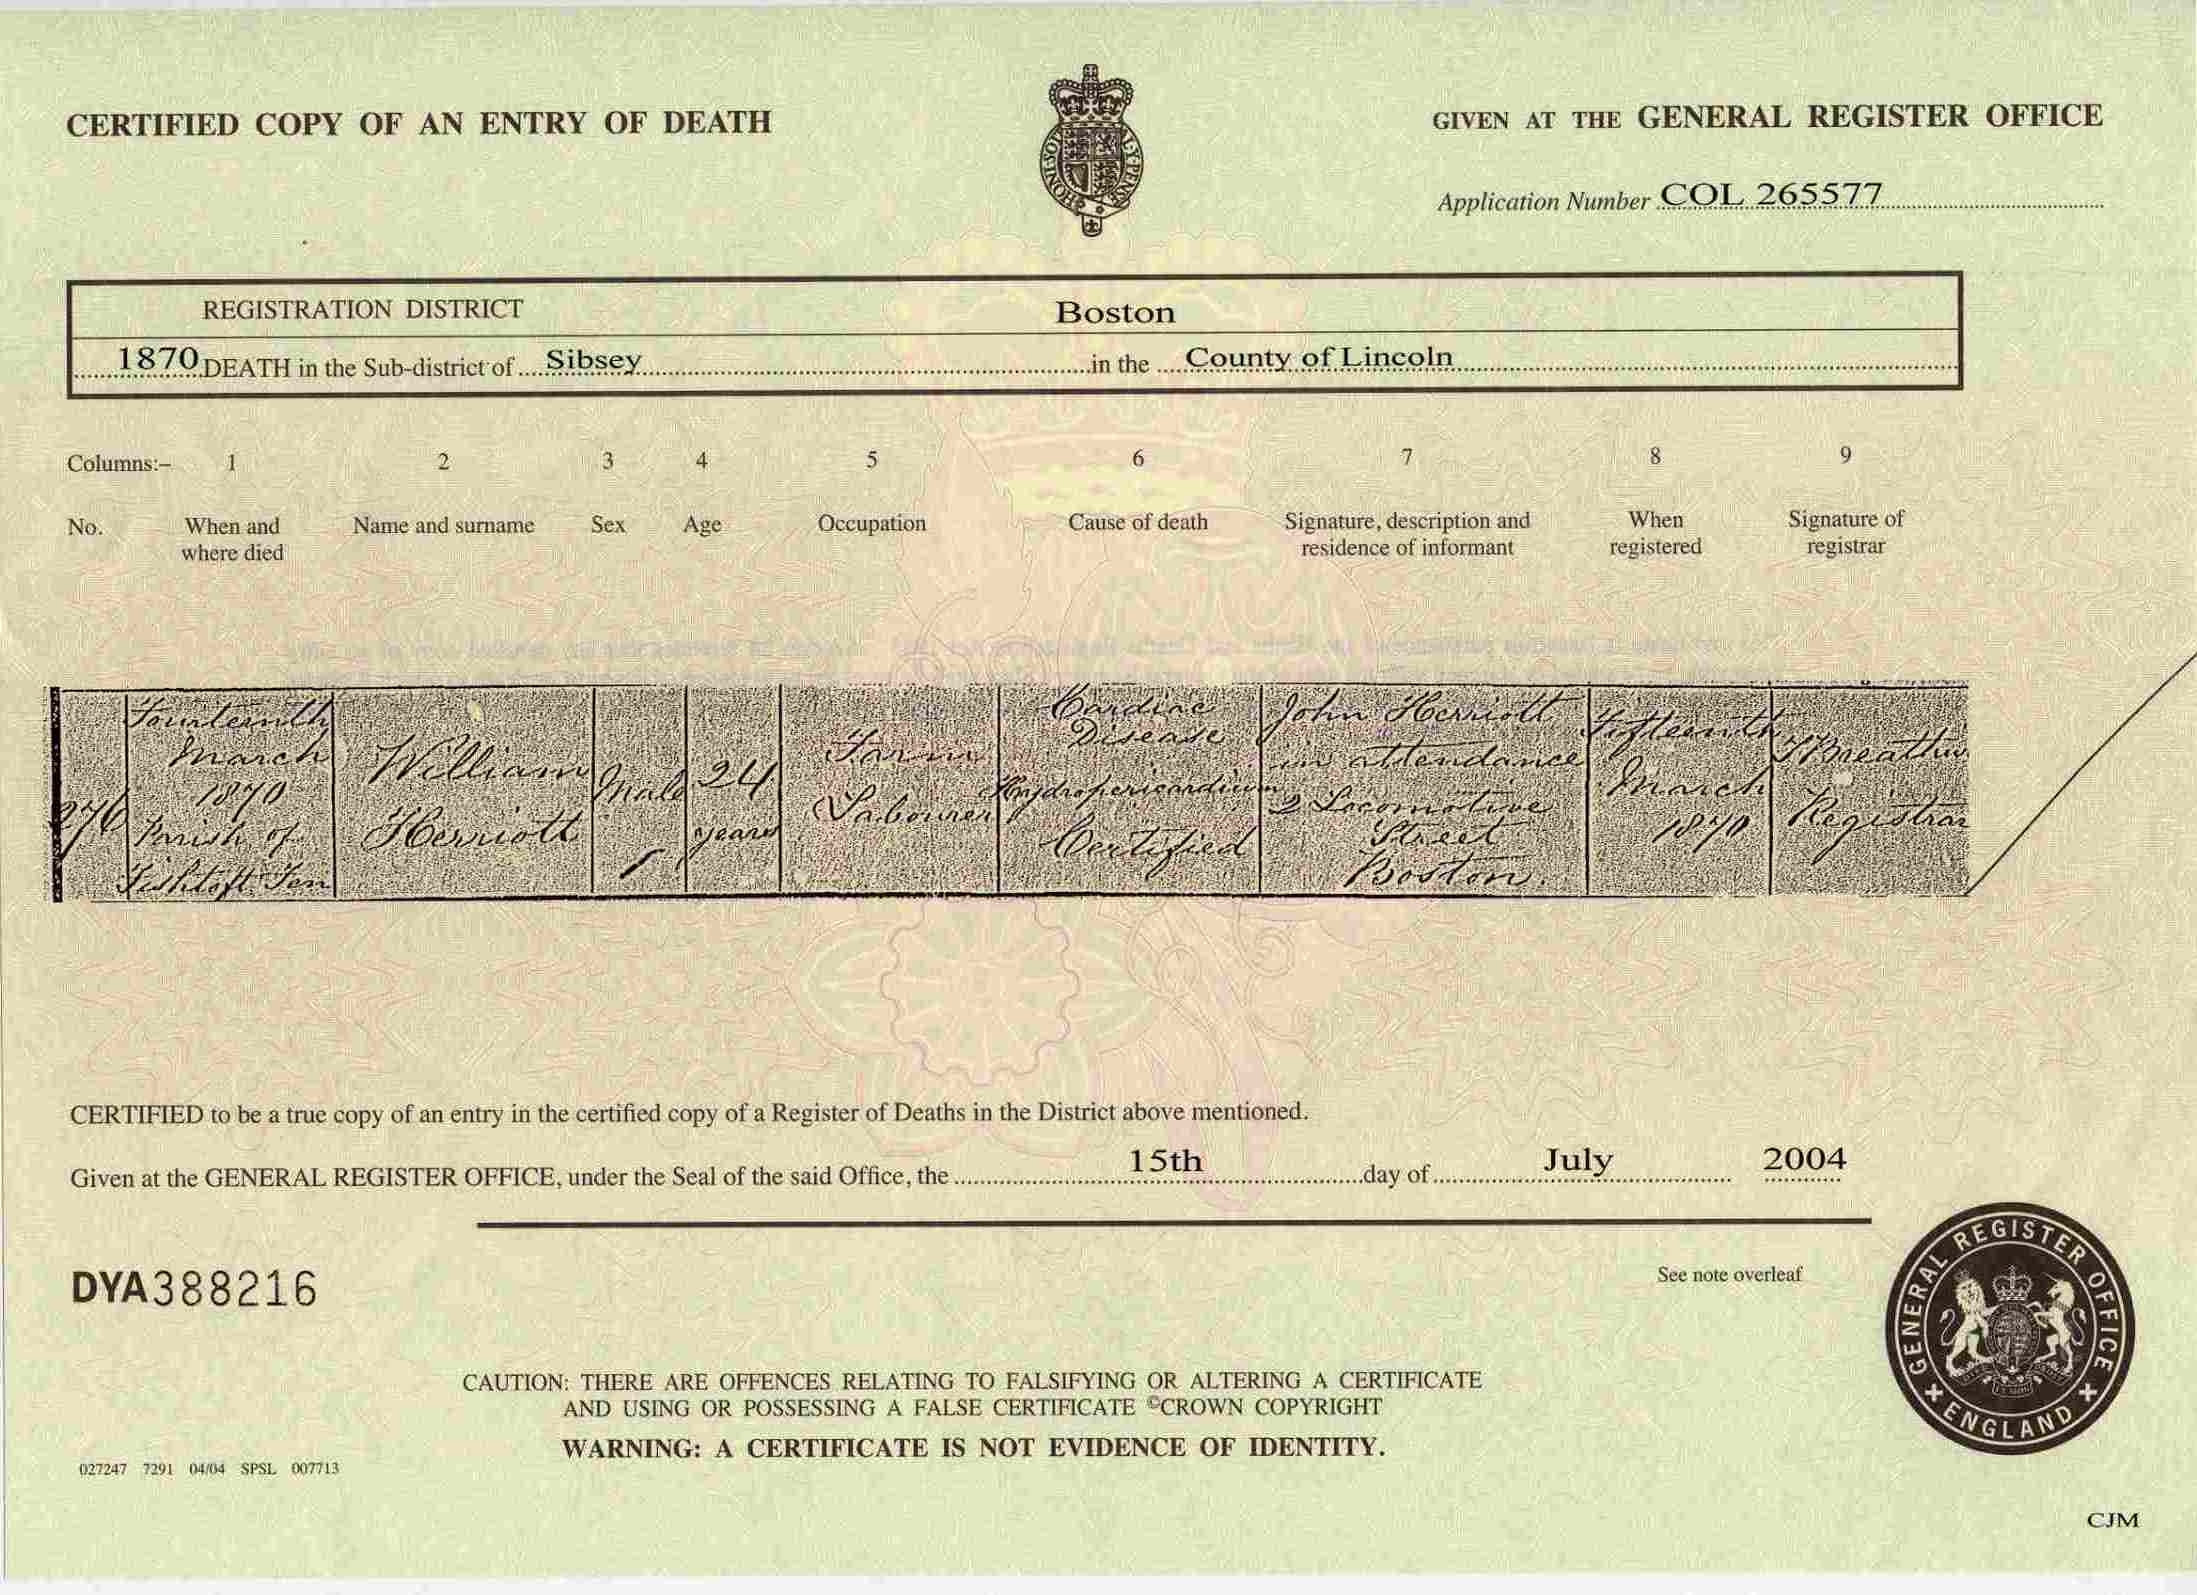 Stuart charles pasks maternal and direct family source page s497 copy death certificate of william herriott died 14 march 1870 in the registration district of sibsey lincolnshire aiddatafo Image collections